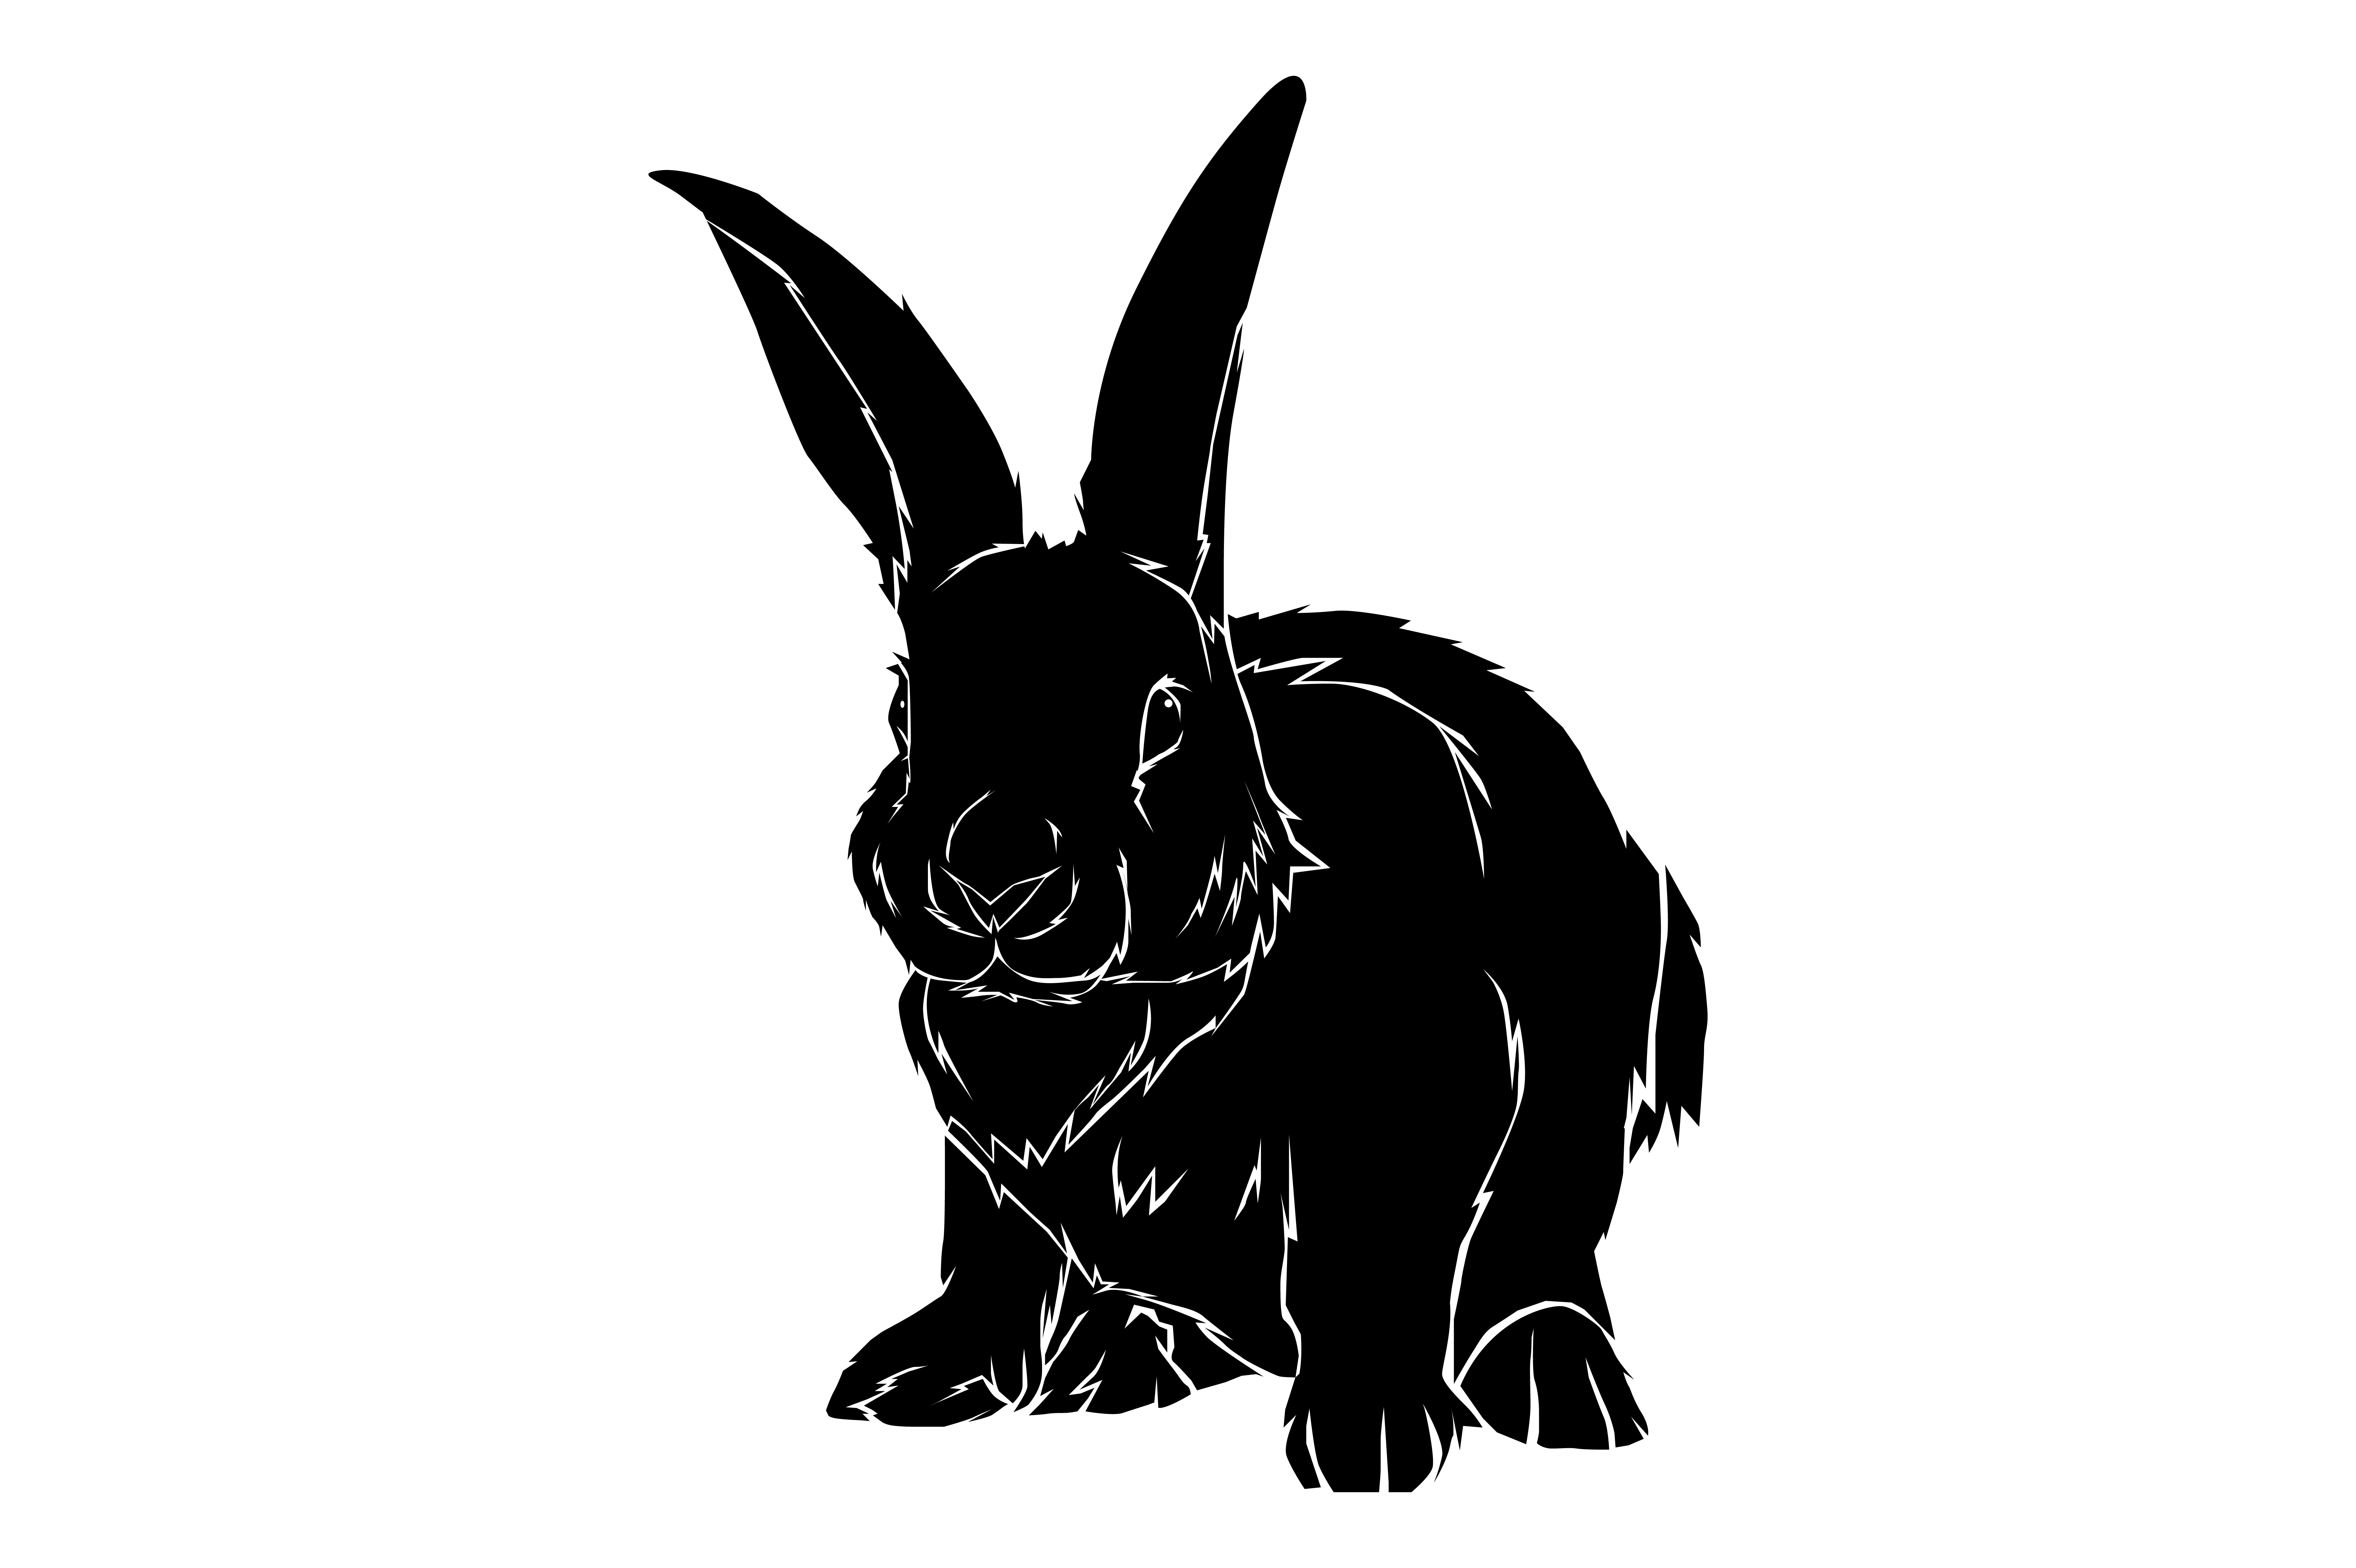 Download Free Rabbit Silhouette Graphic By Rfg Creative Fabrica for Cricut Explore, Silhouette and other cutting machines.